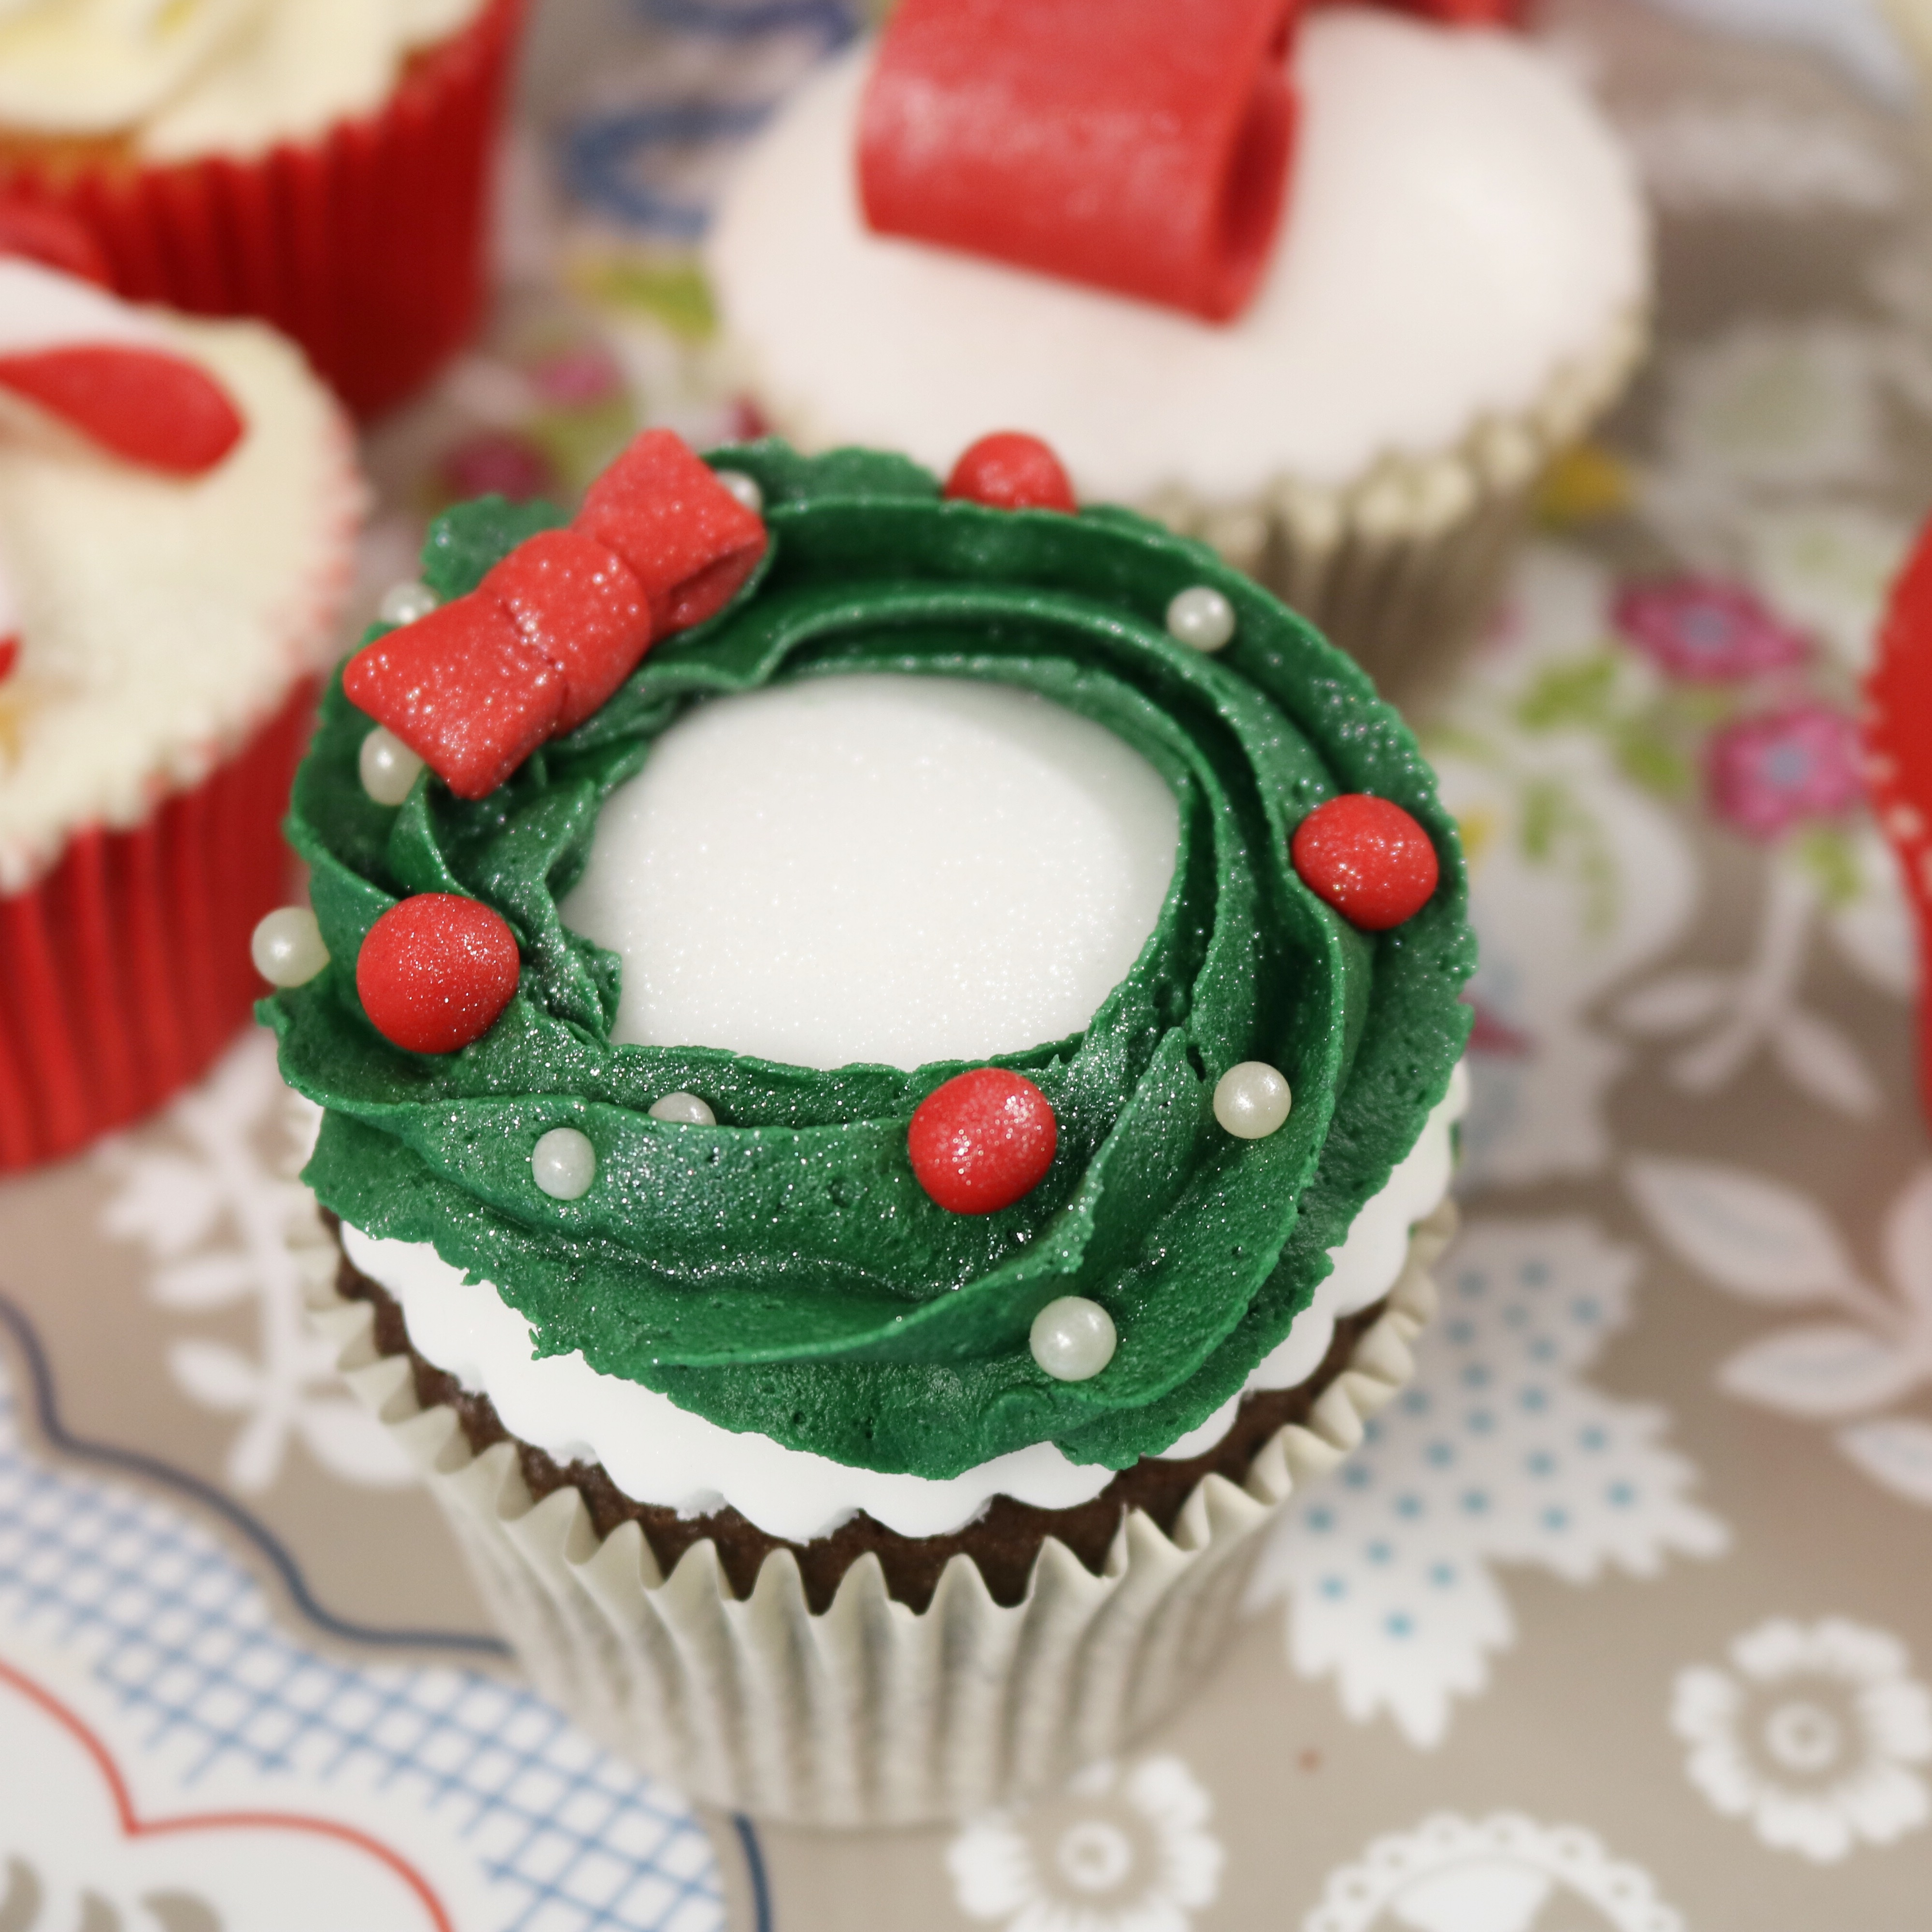 Branded Christmas Cupcakes